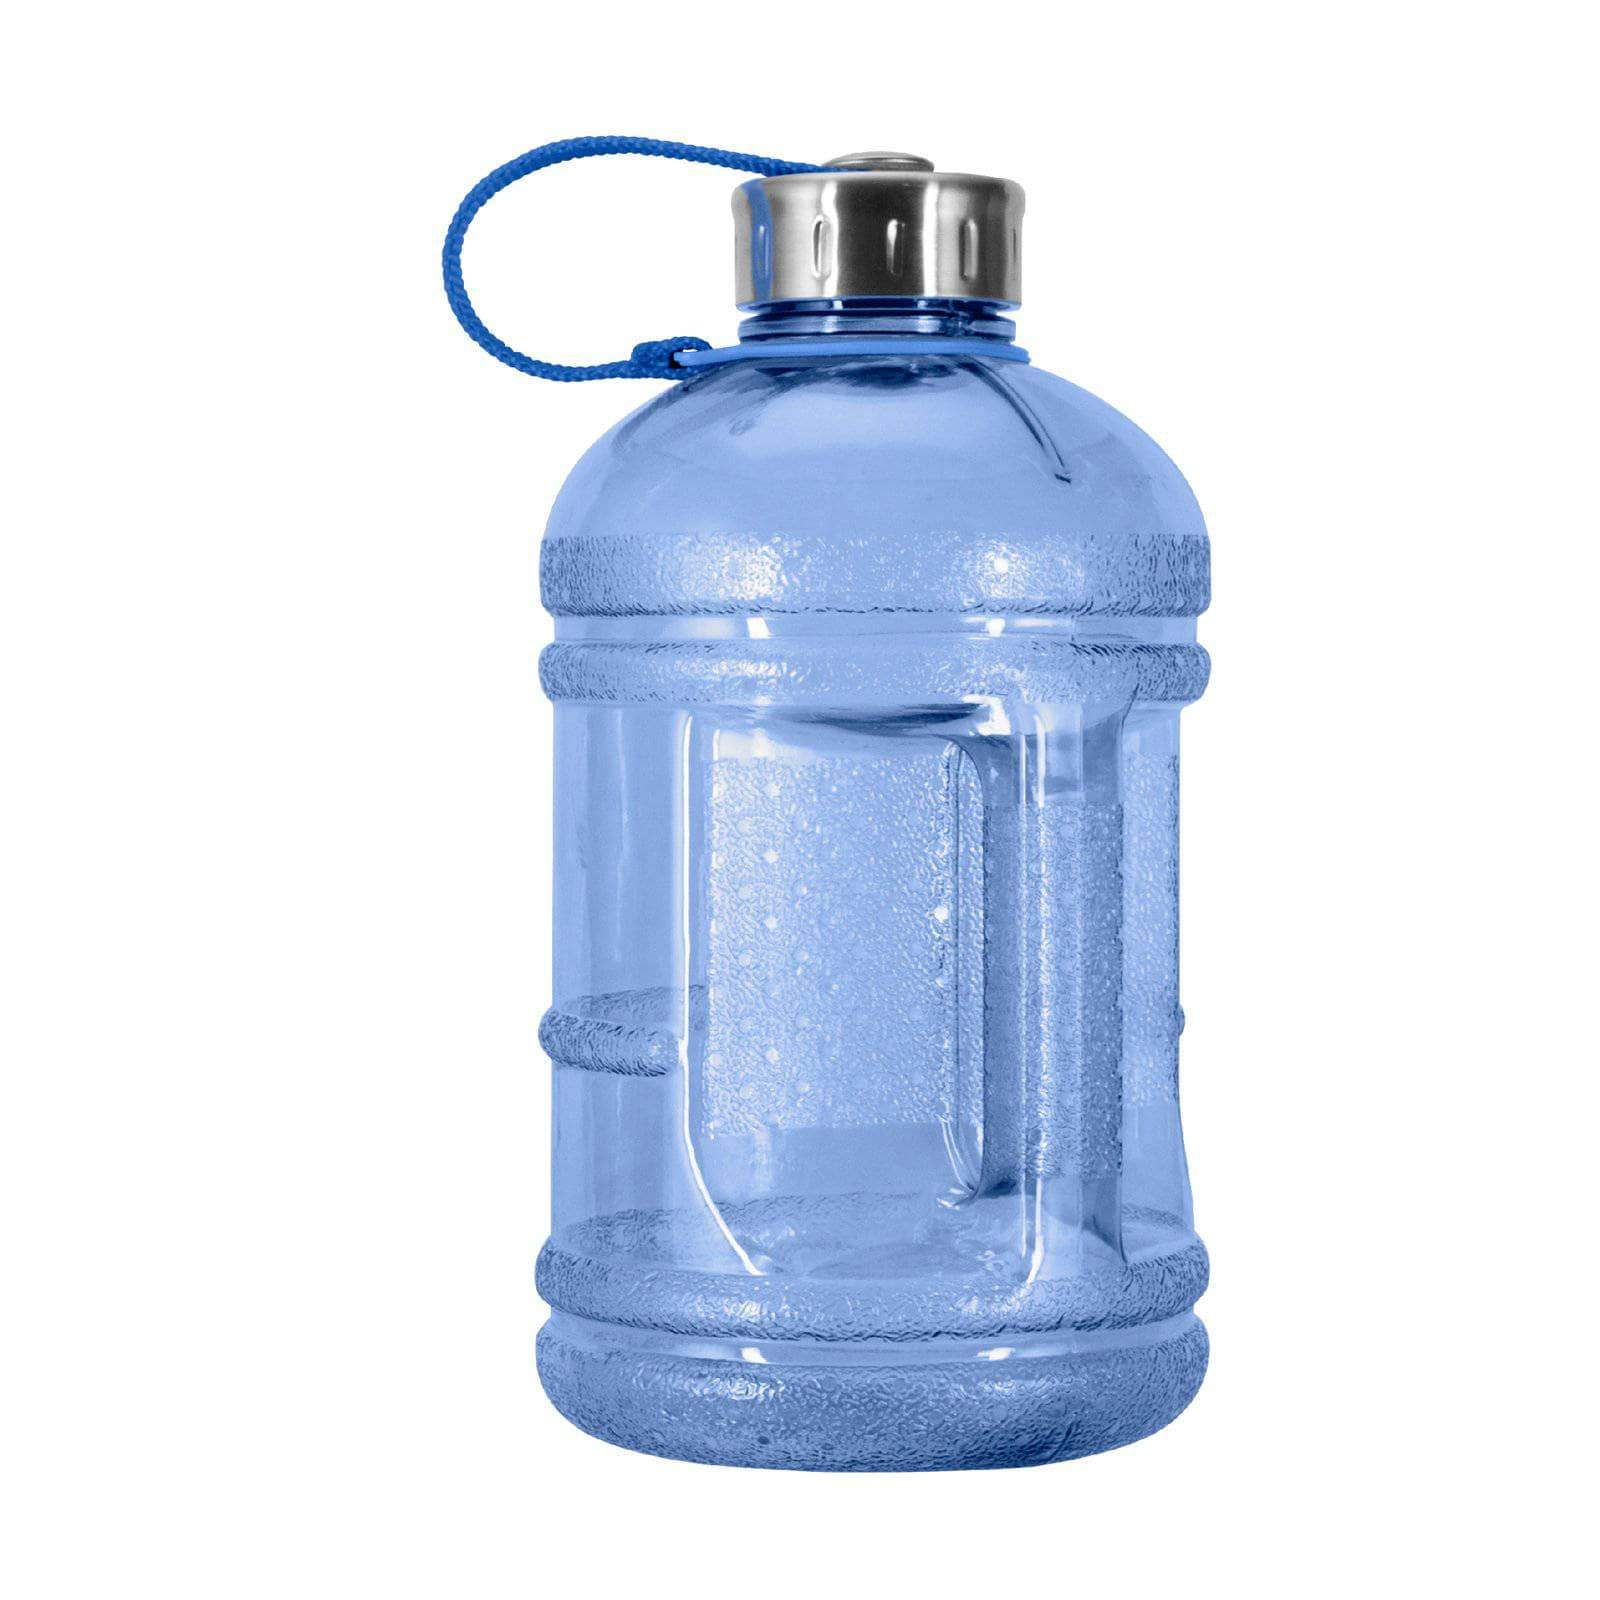 Geo Bottles Bottles Dark Blue 1/2 Gallon BPA FREE Plastic Water Bottle w/ 48mm Steel Cap